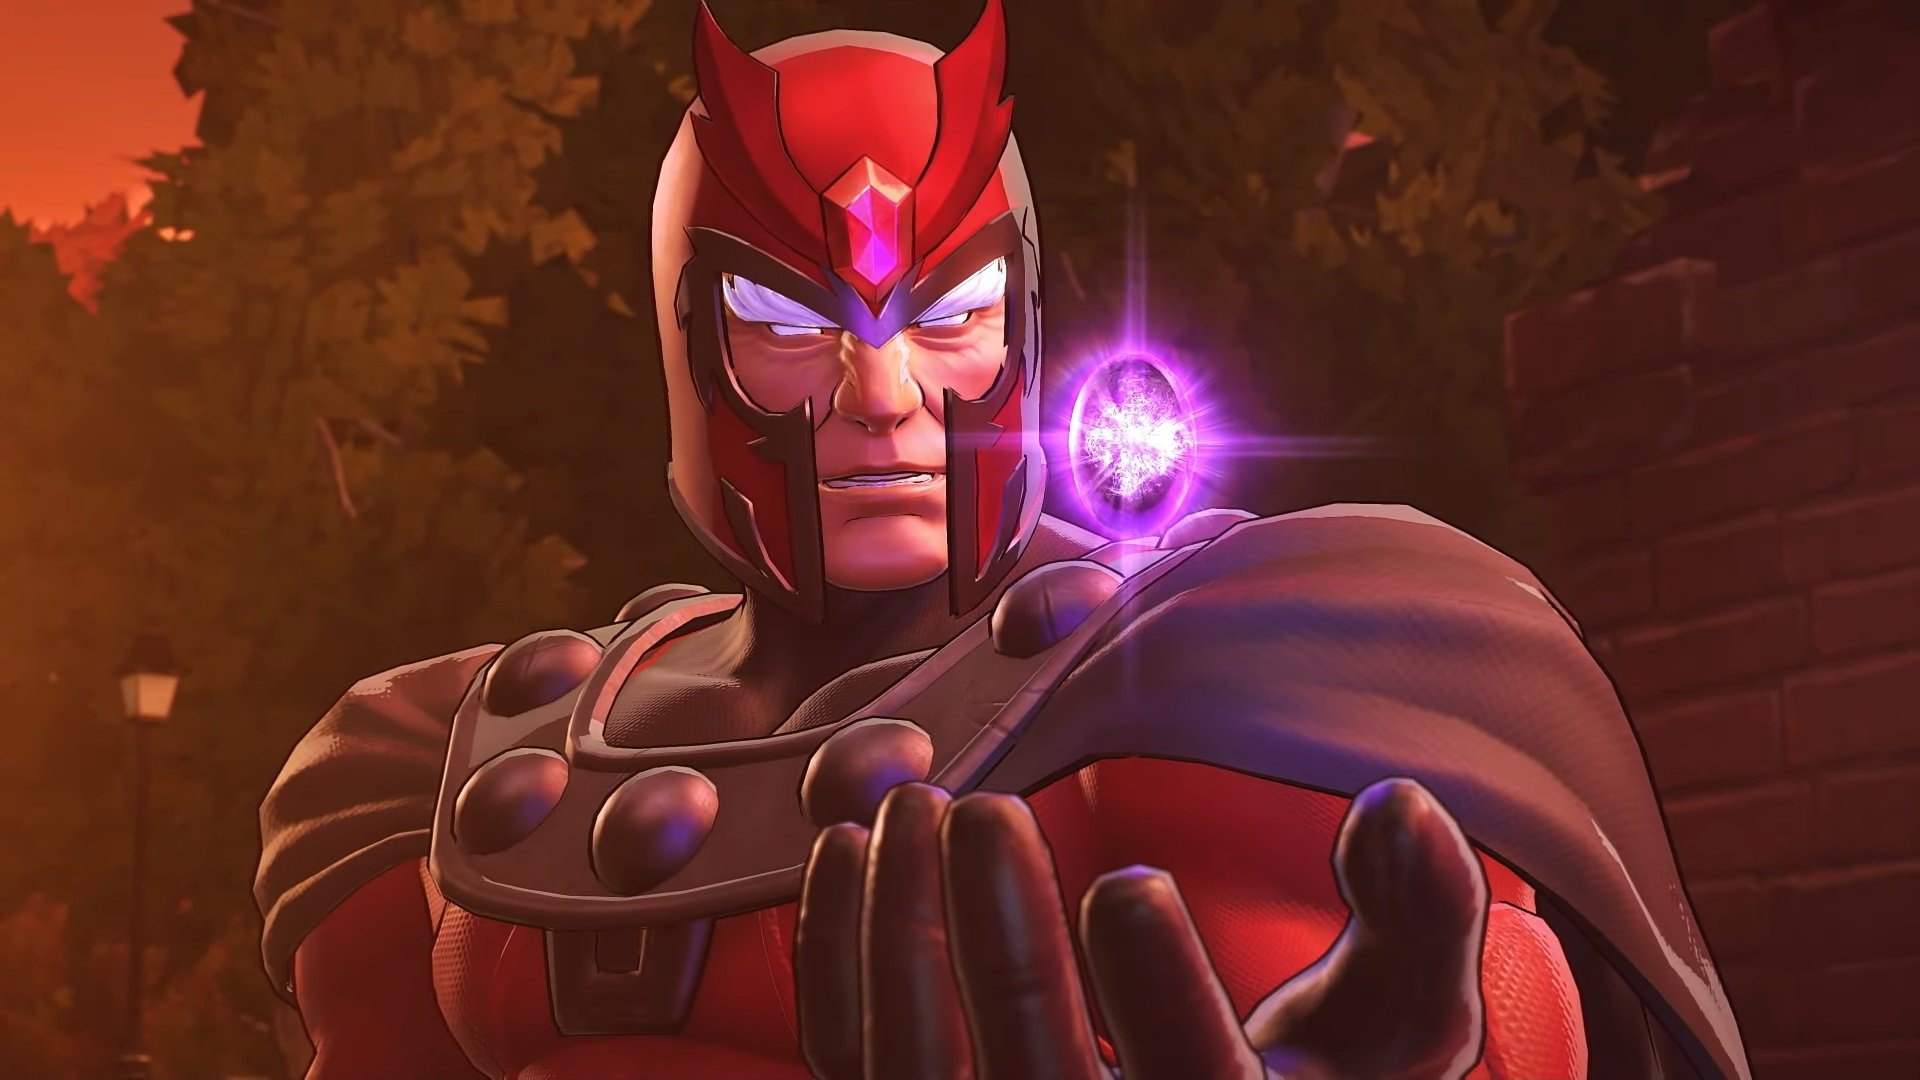 How to unlock Magneto in Marvel Ultimate Alliance 3